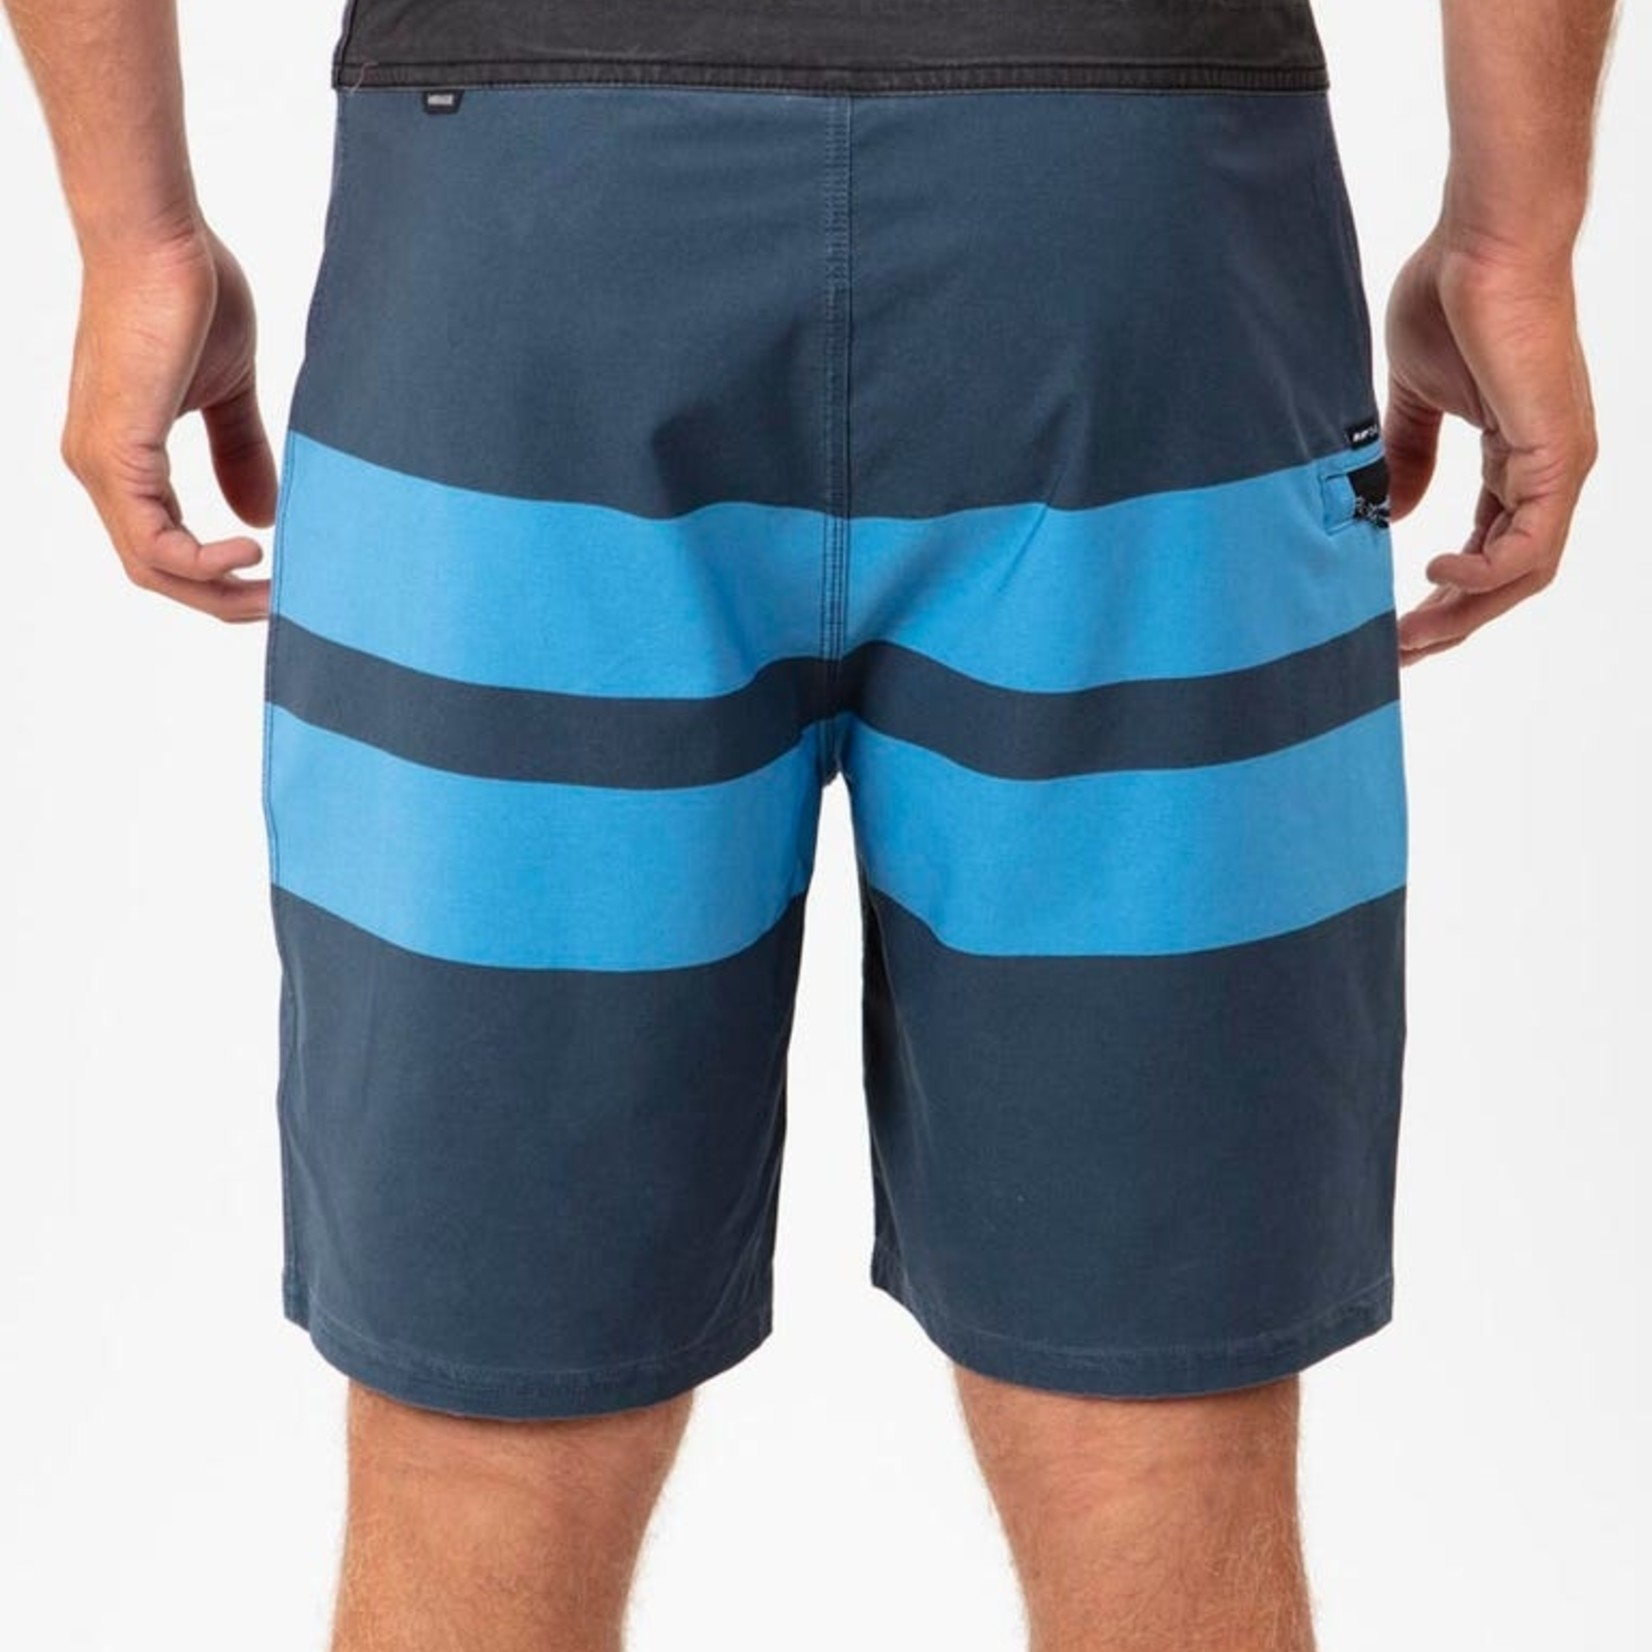 RipCurl Rip Curl Mirage Stacked 2.0 Boardshorts